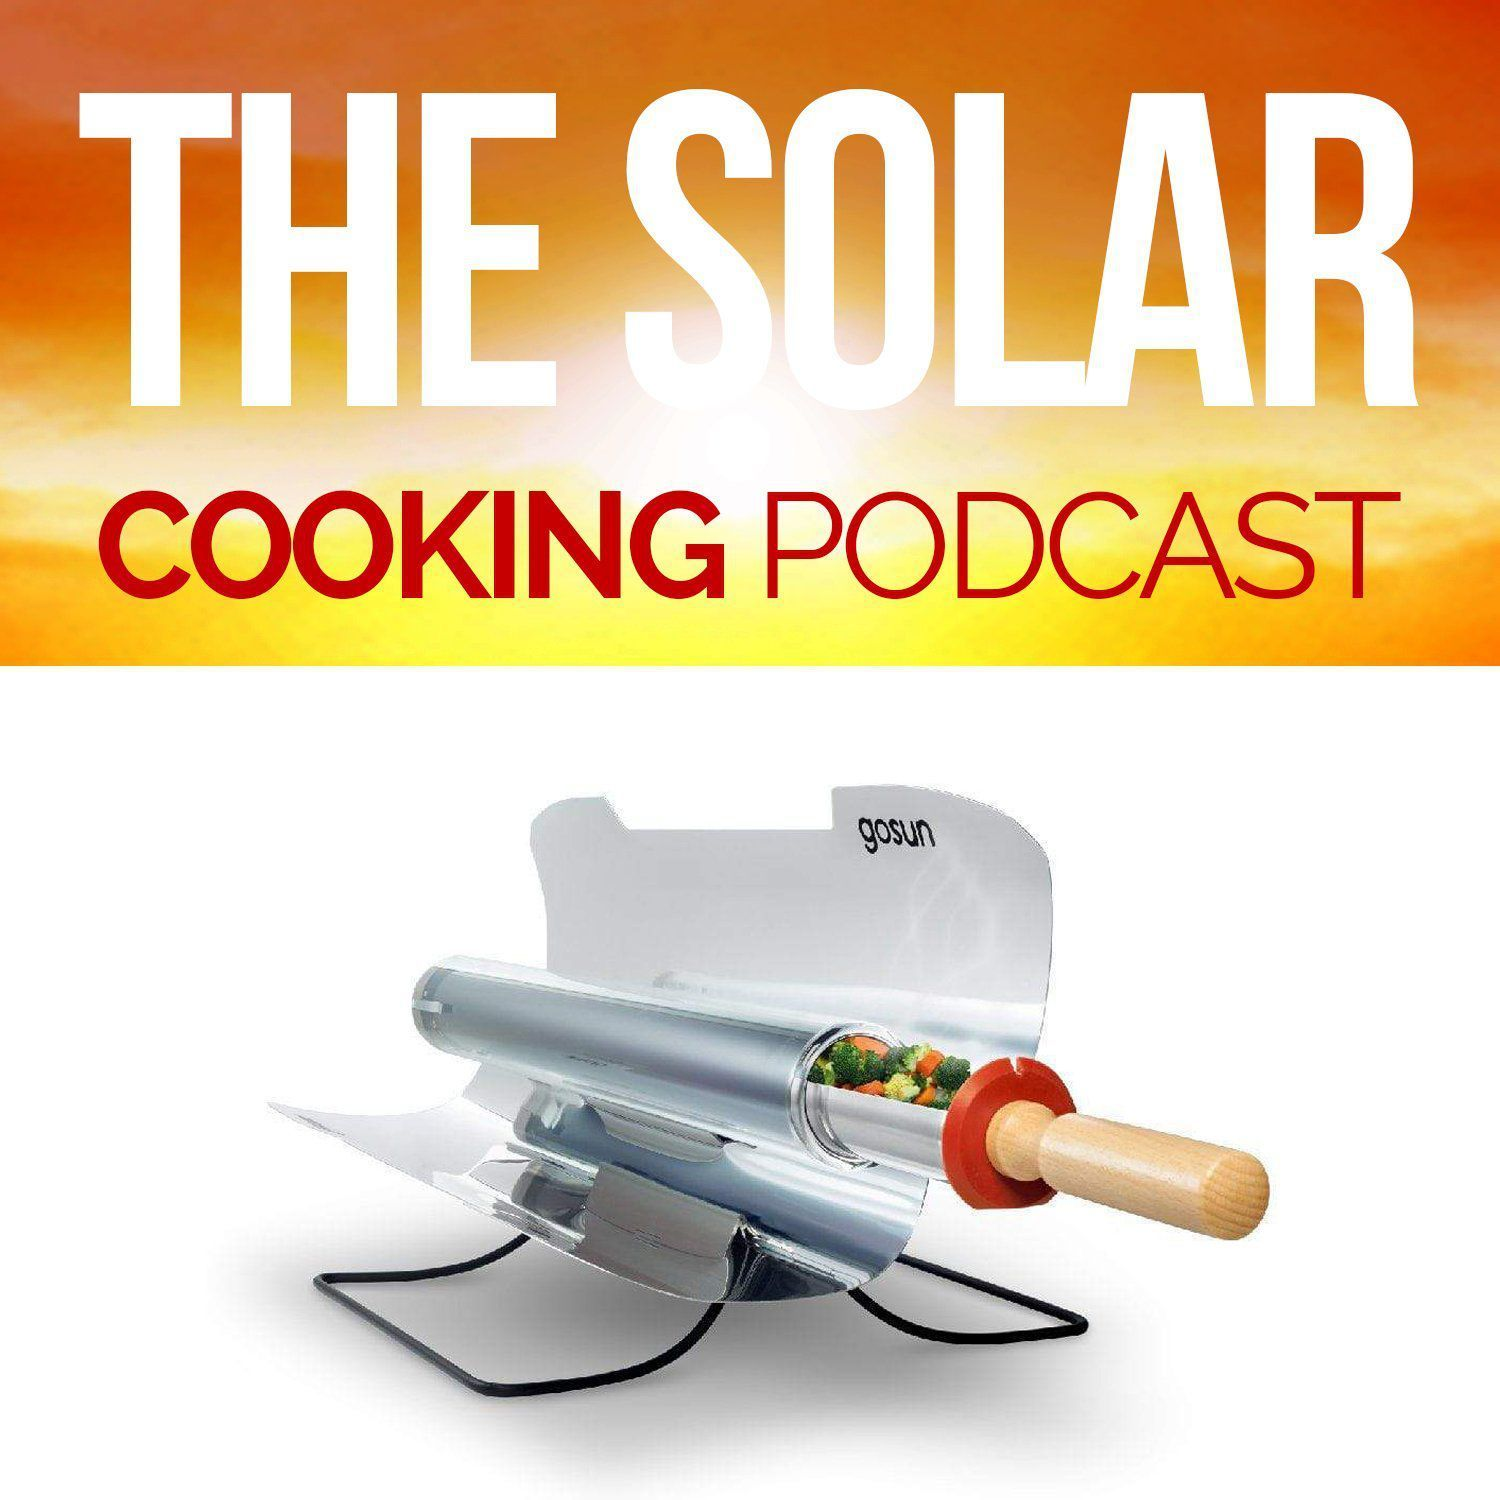 S1 Ep6: The Environmental Impact of Solar Cooking